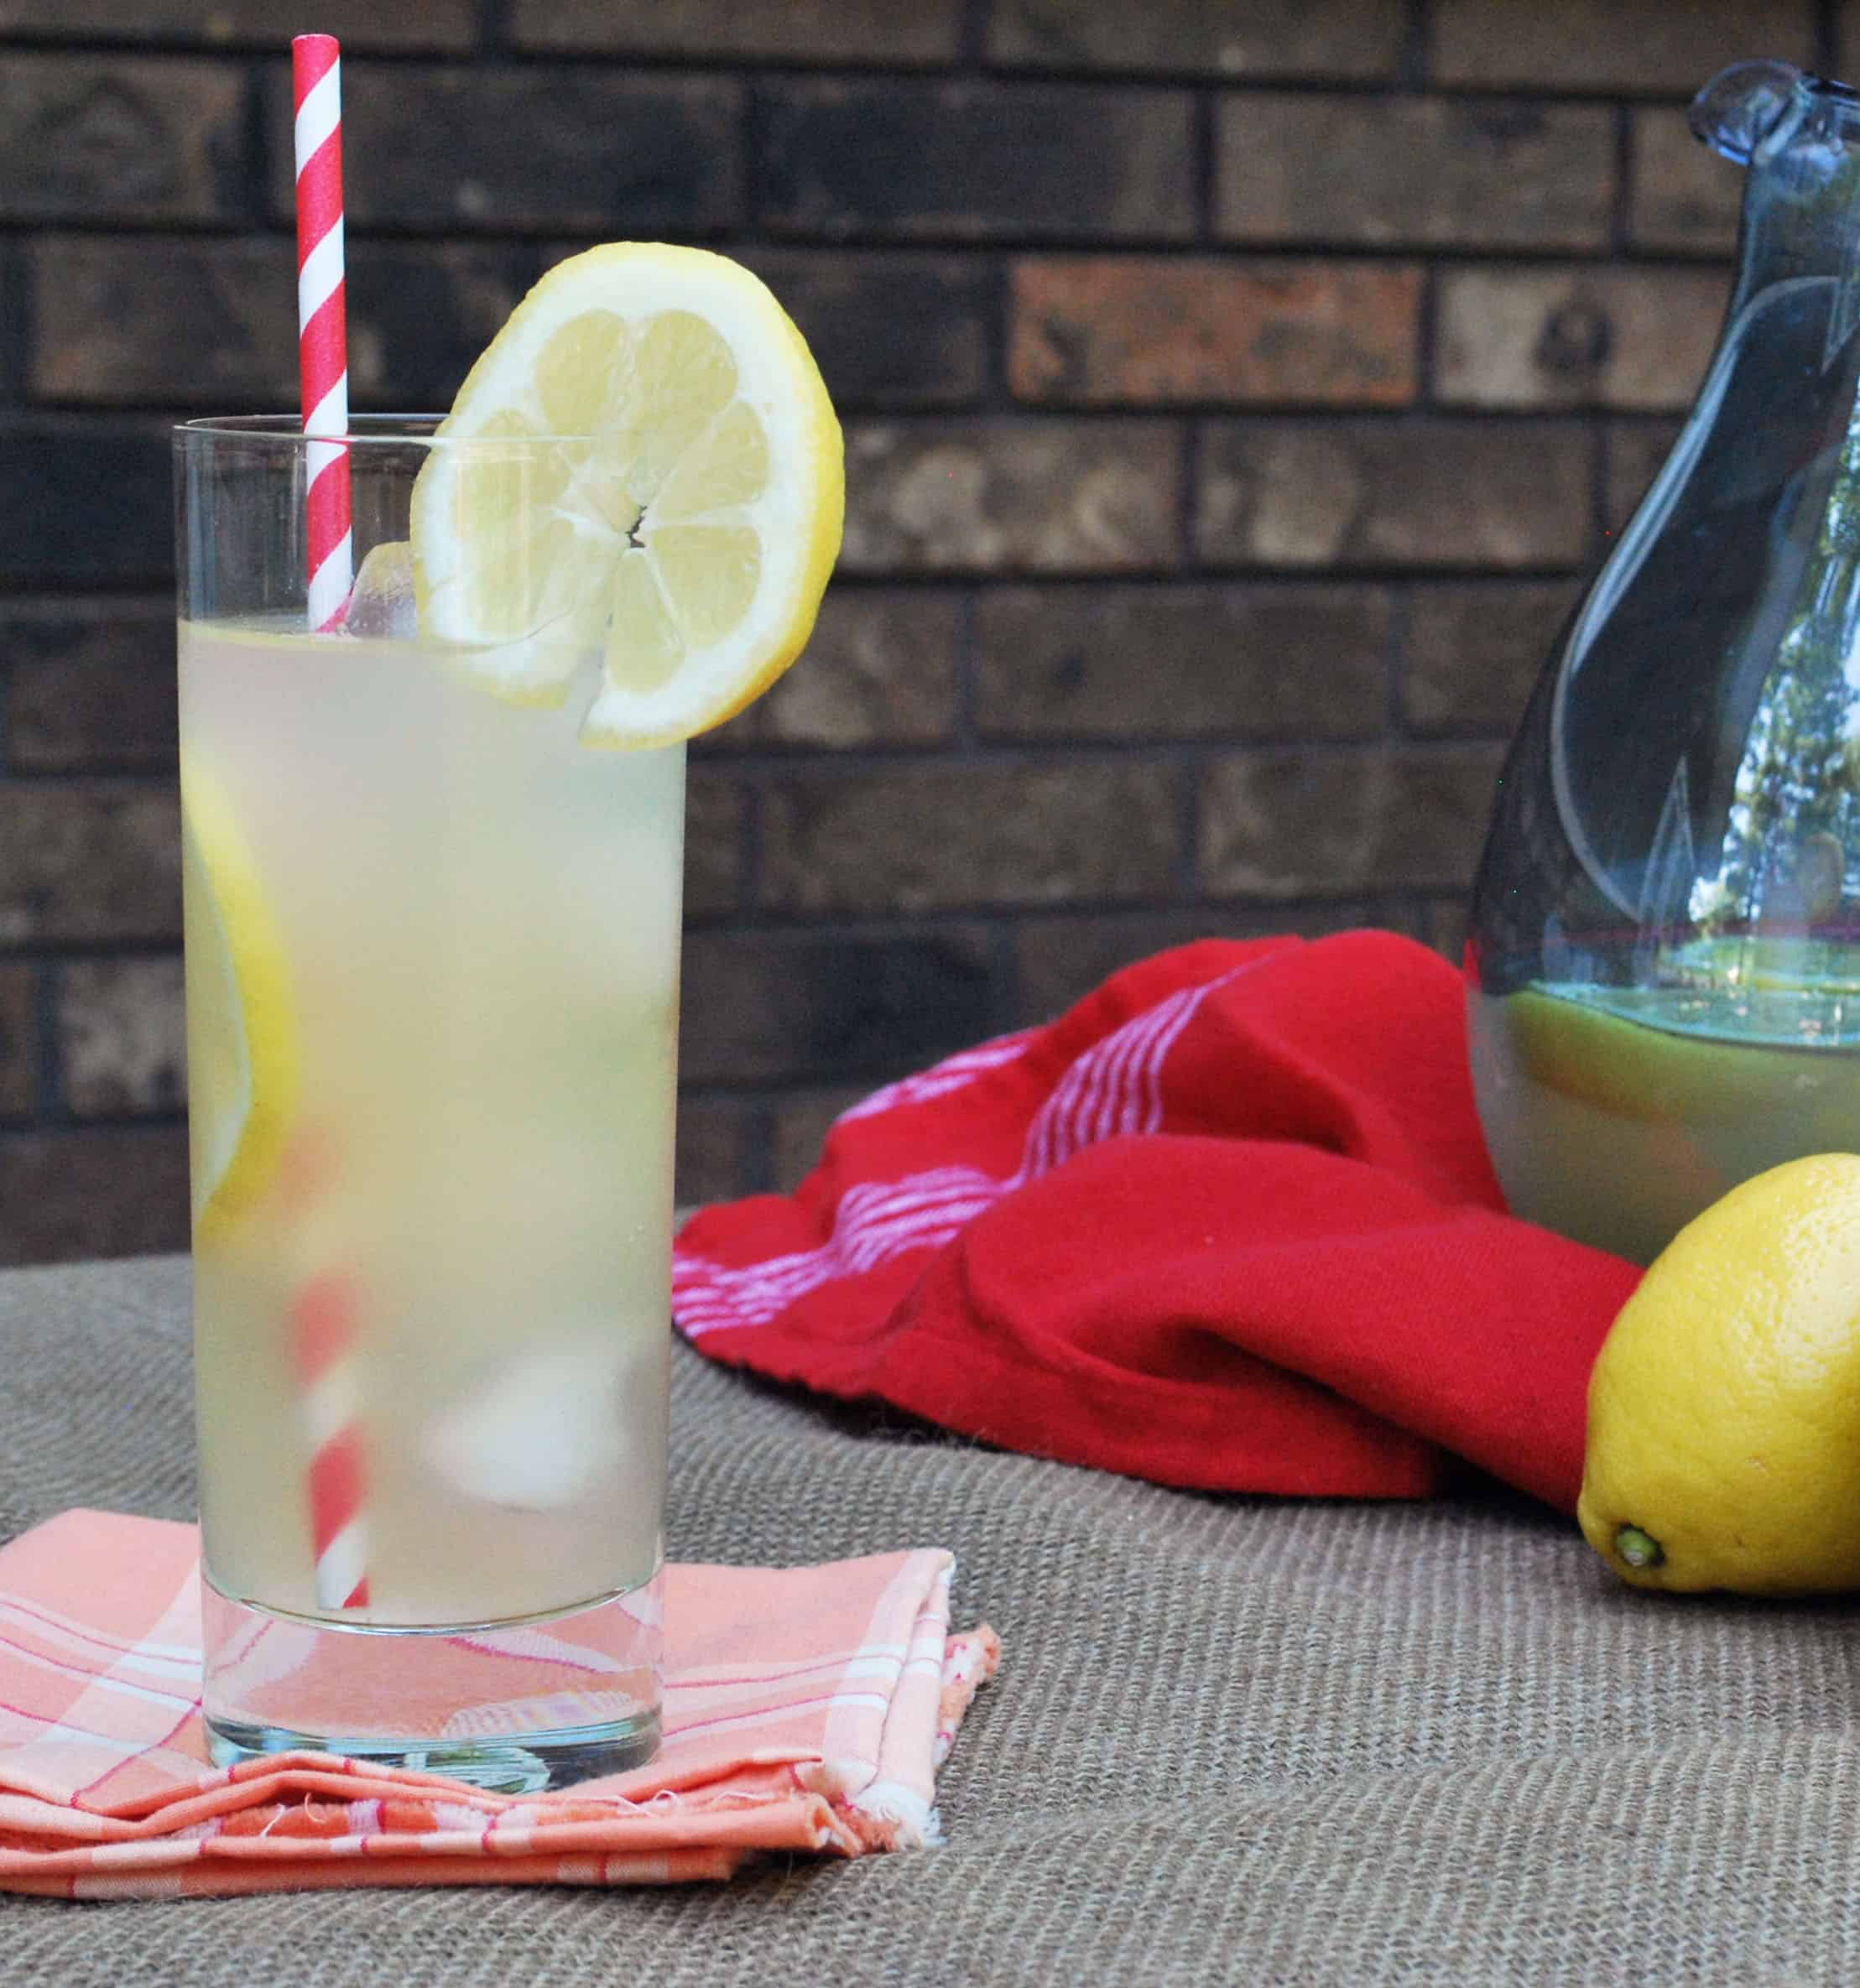 Homemade Lemonade - This will be perfect for summer! Full recipe at theliveinkitchen.com